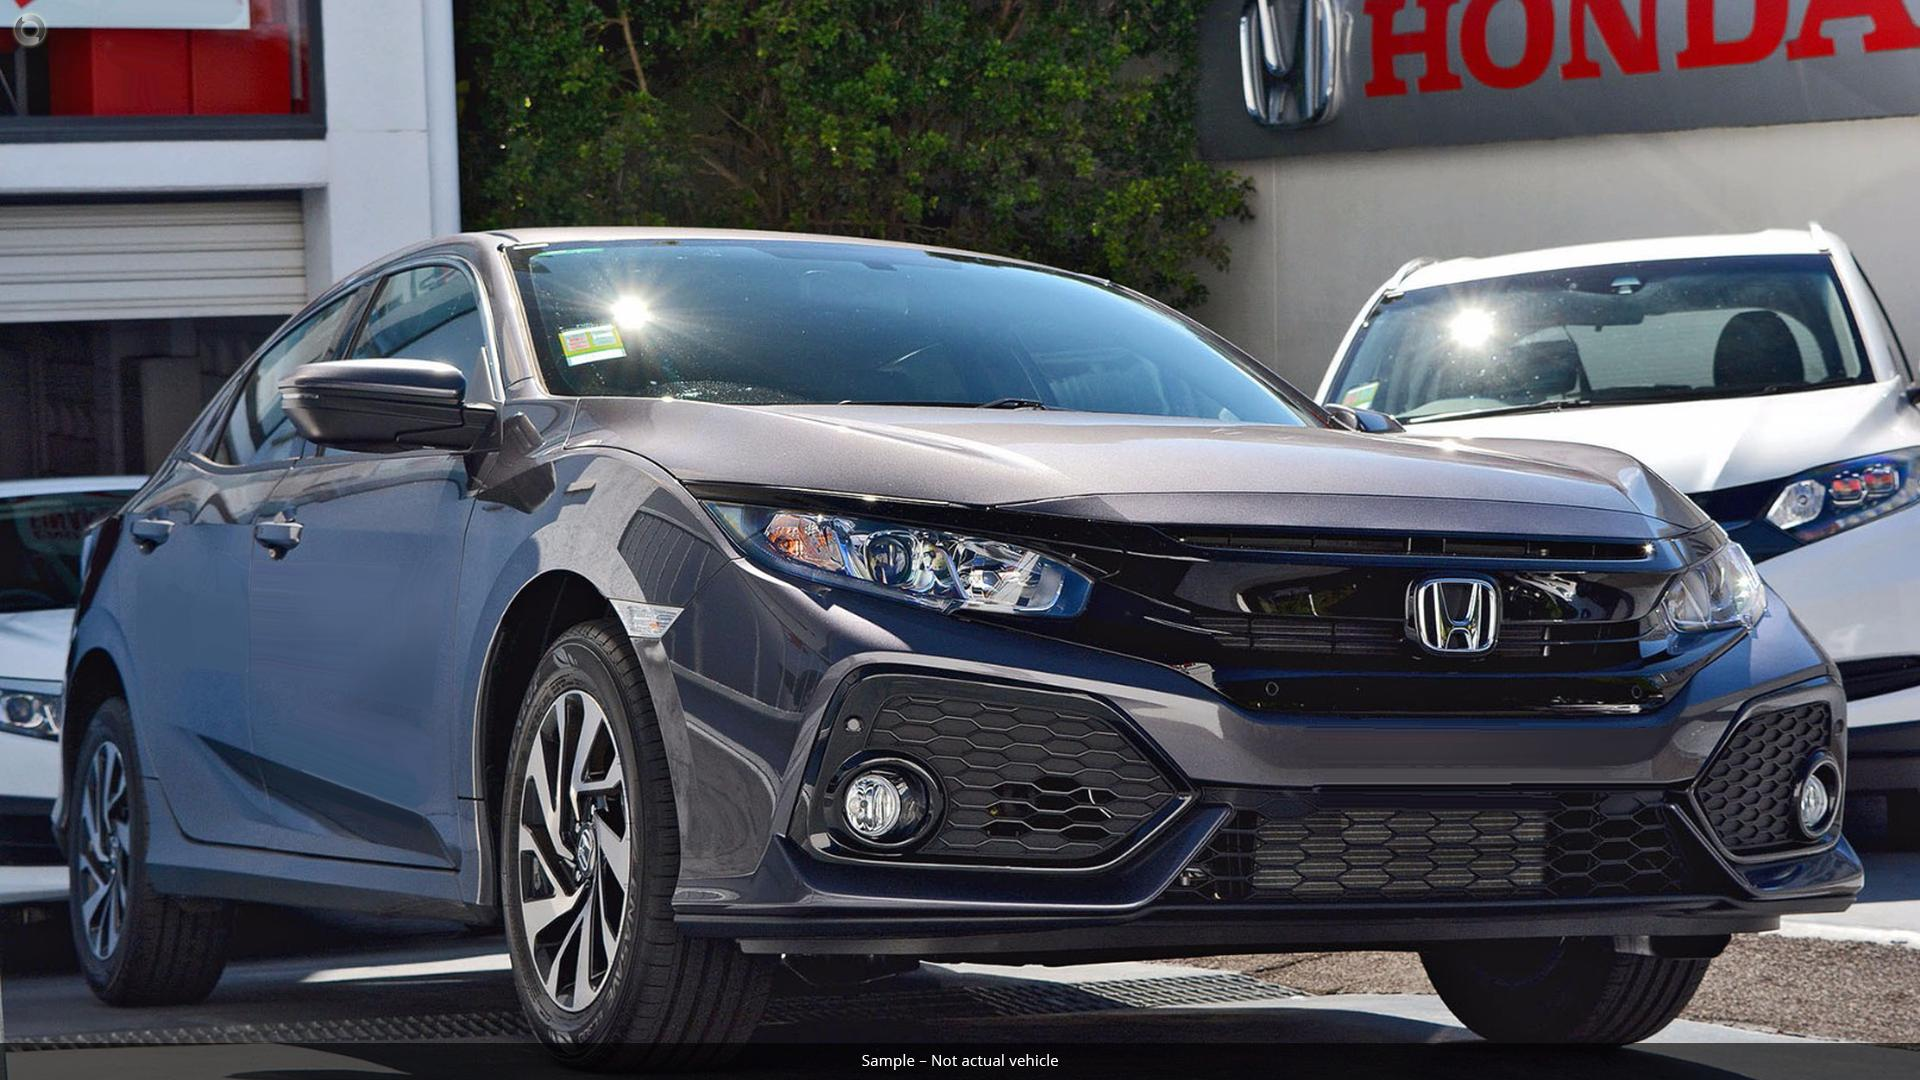 2019 Honda Civic VTi-S 10th Gen